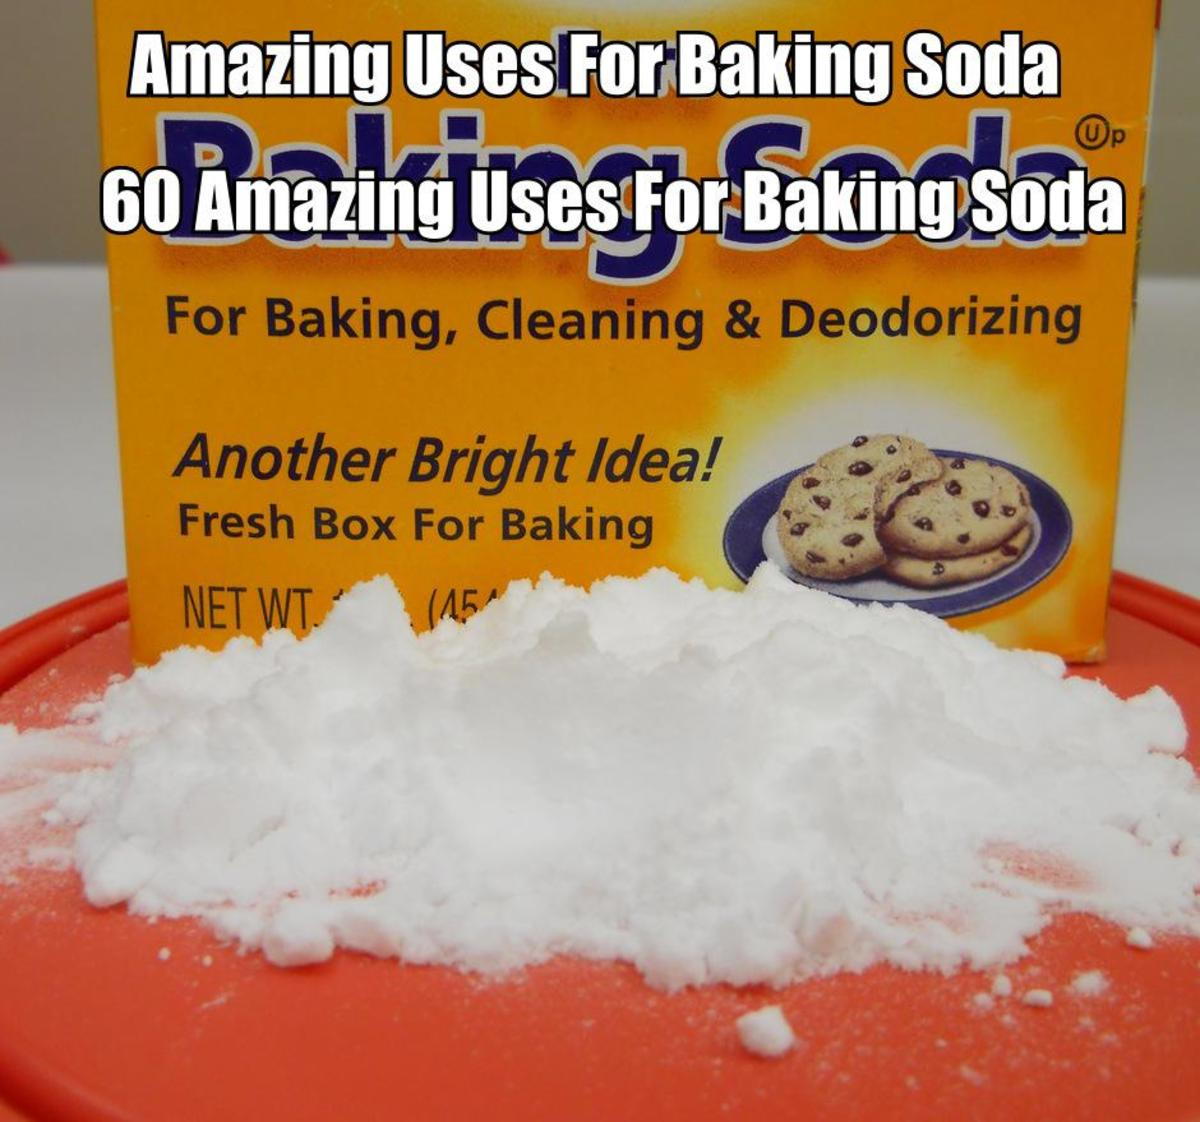 60 Amazing Uses For Baking Soda